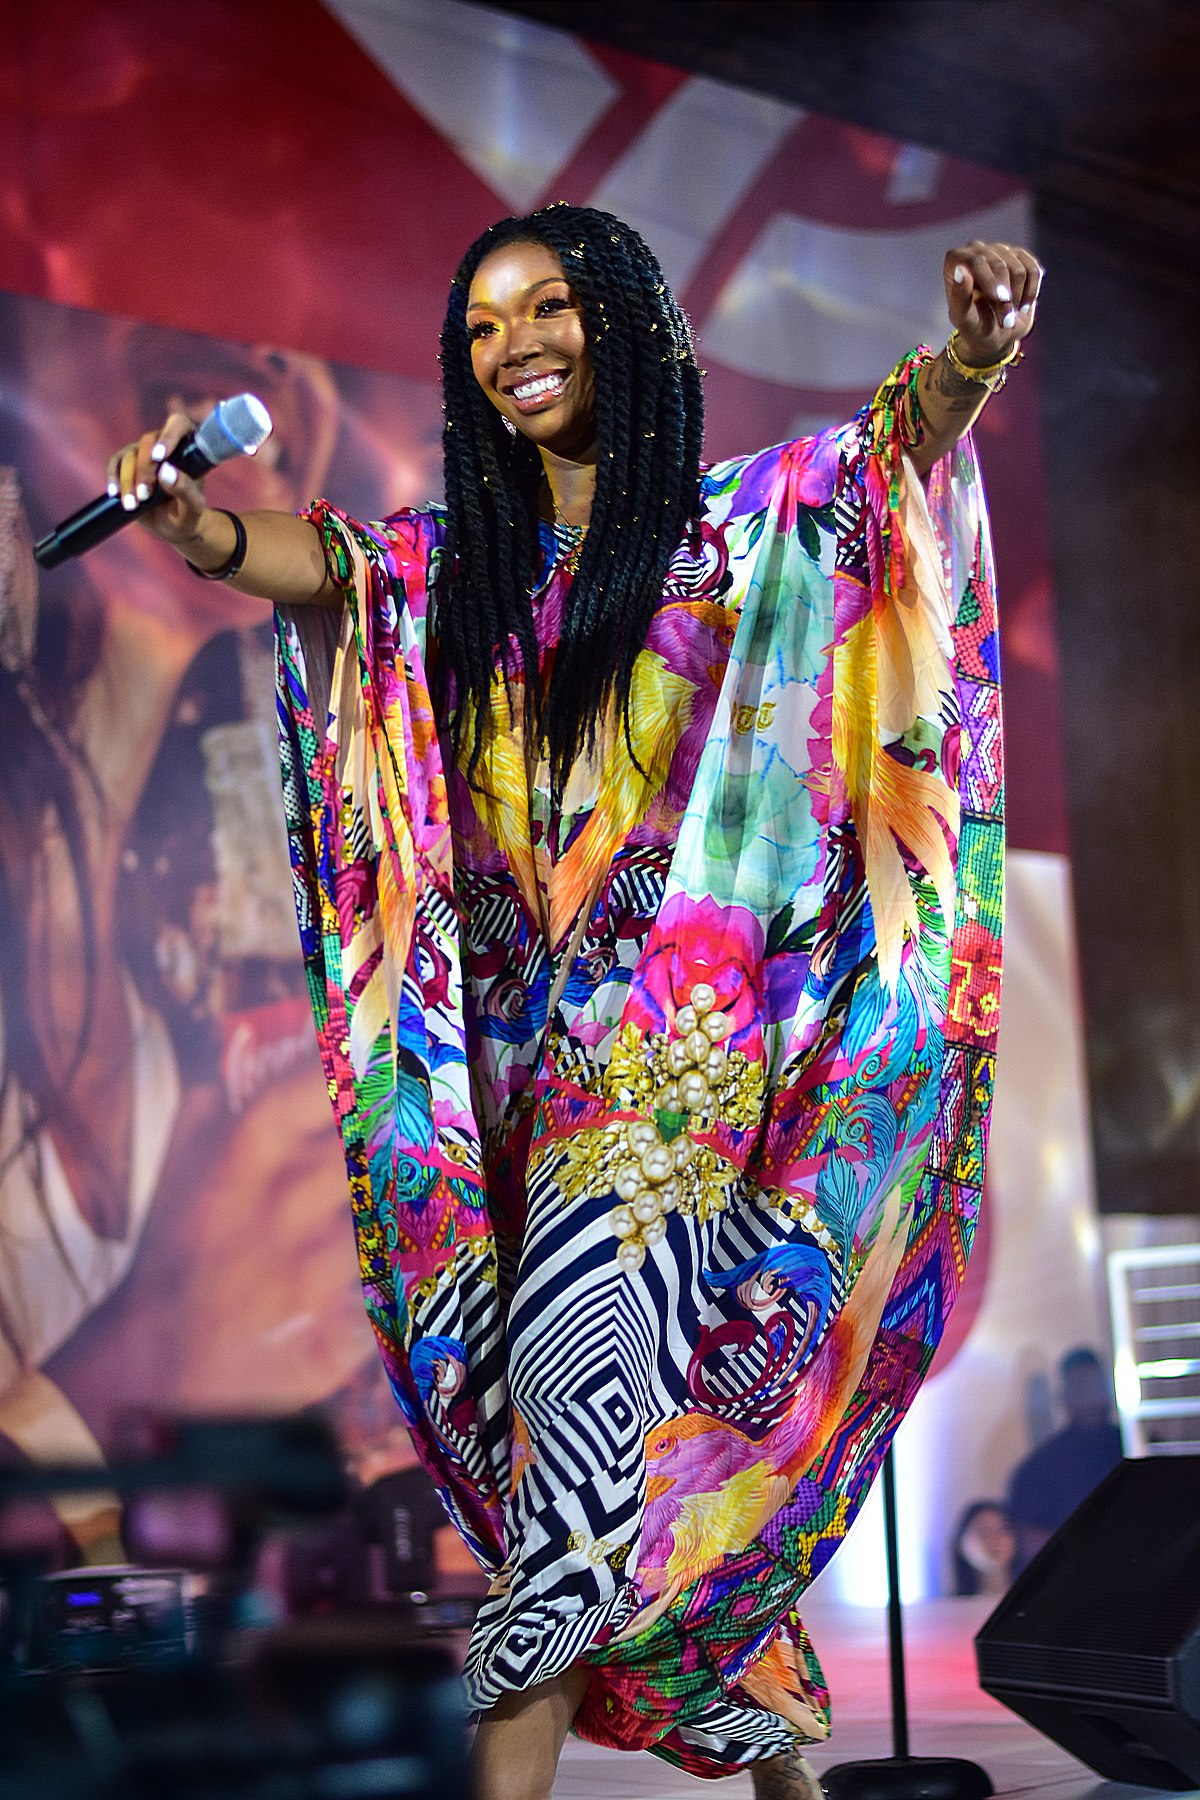 Brandy Norwood - Wikipedia